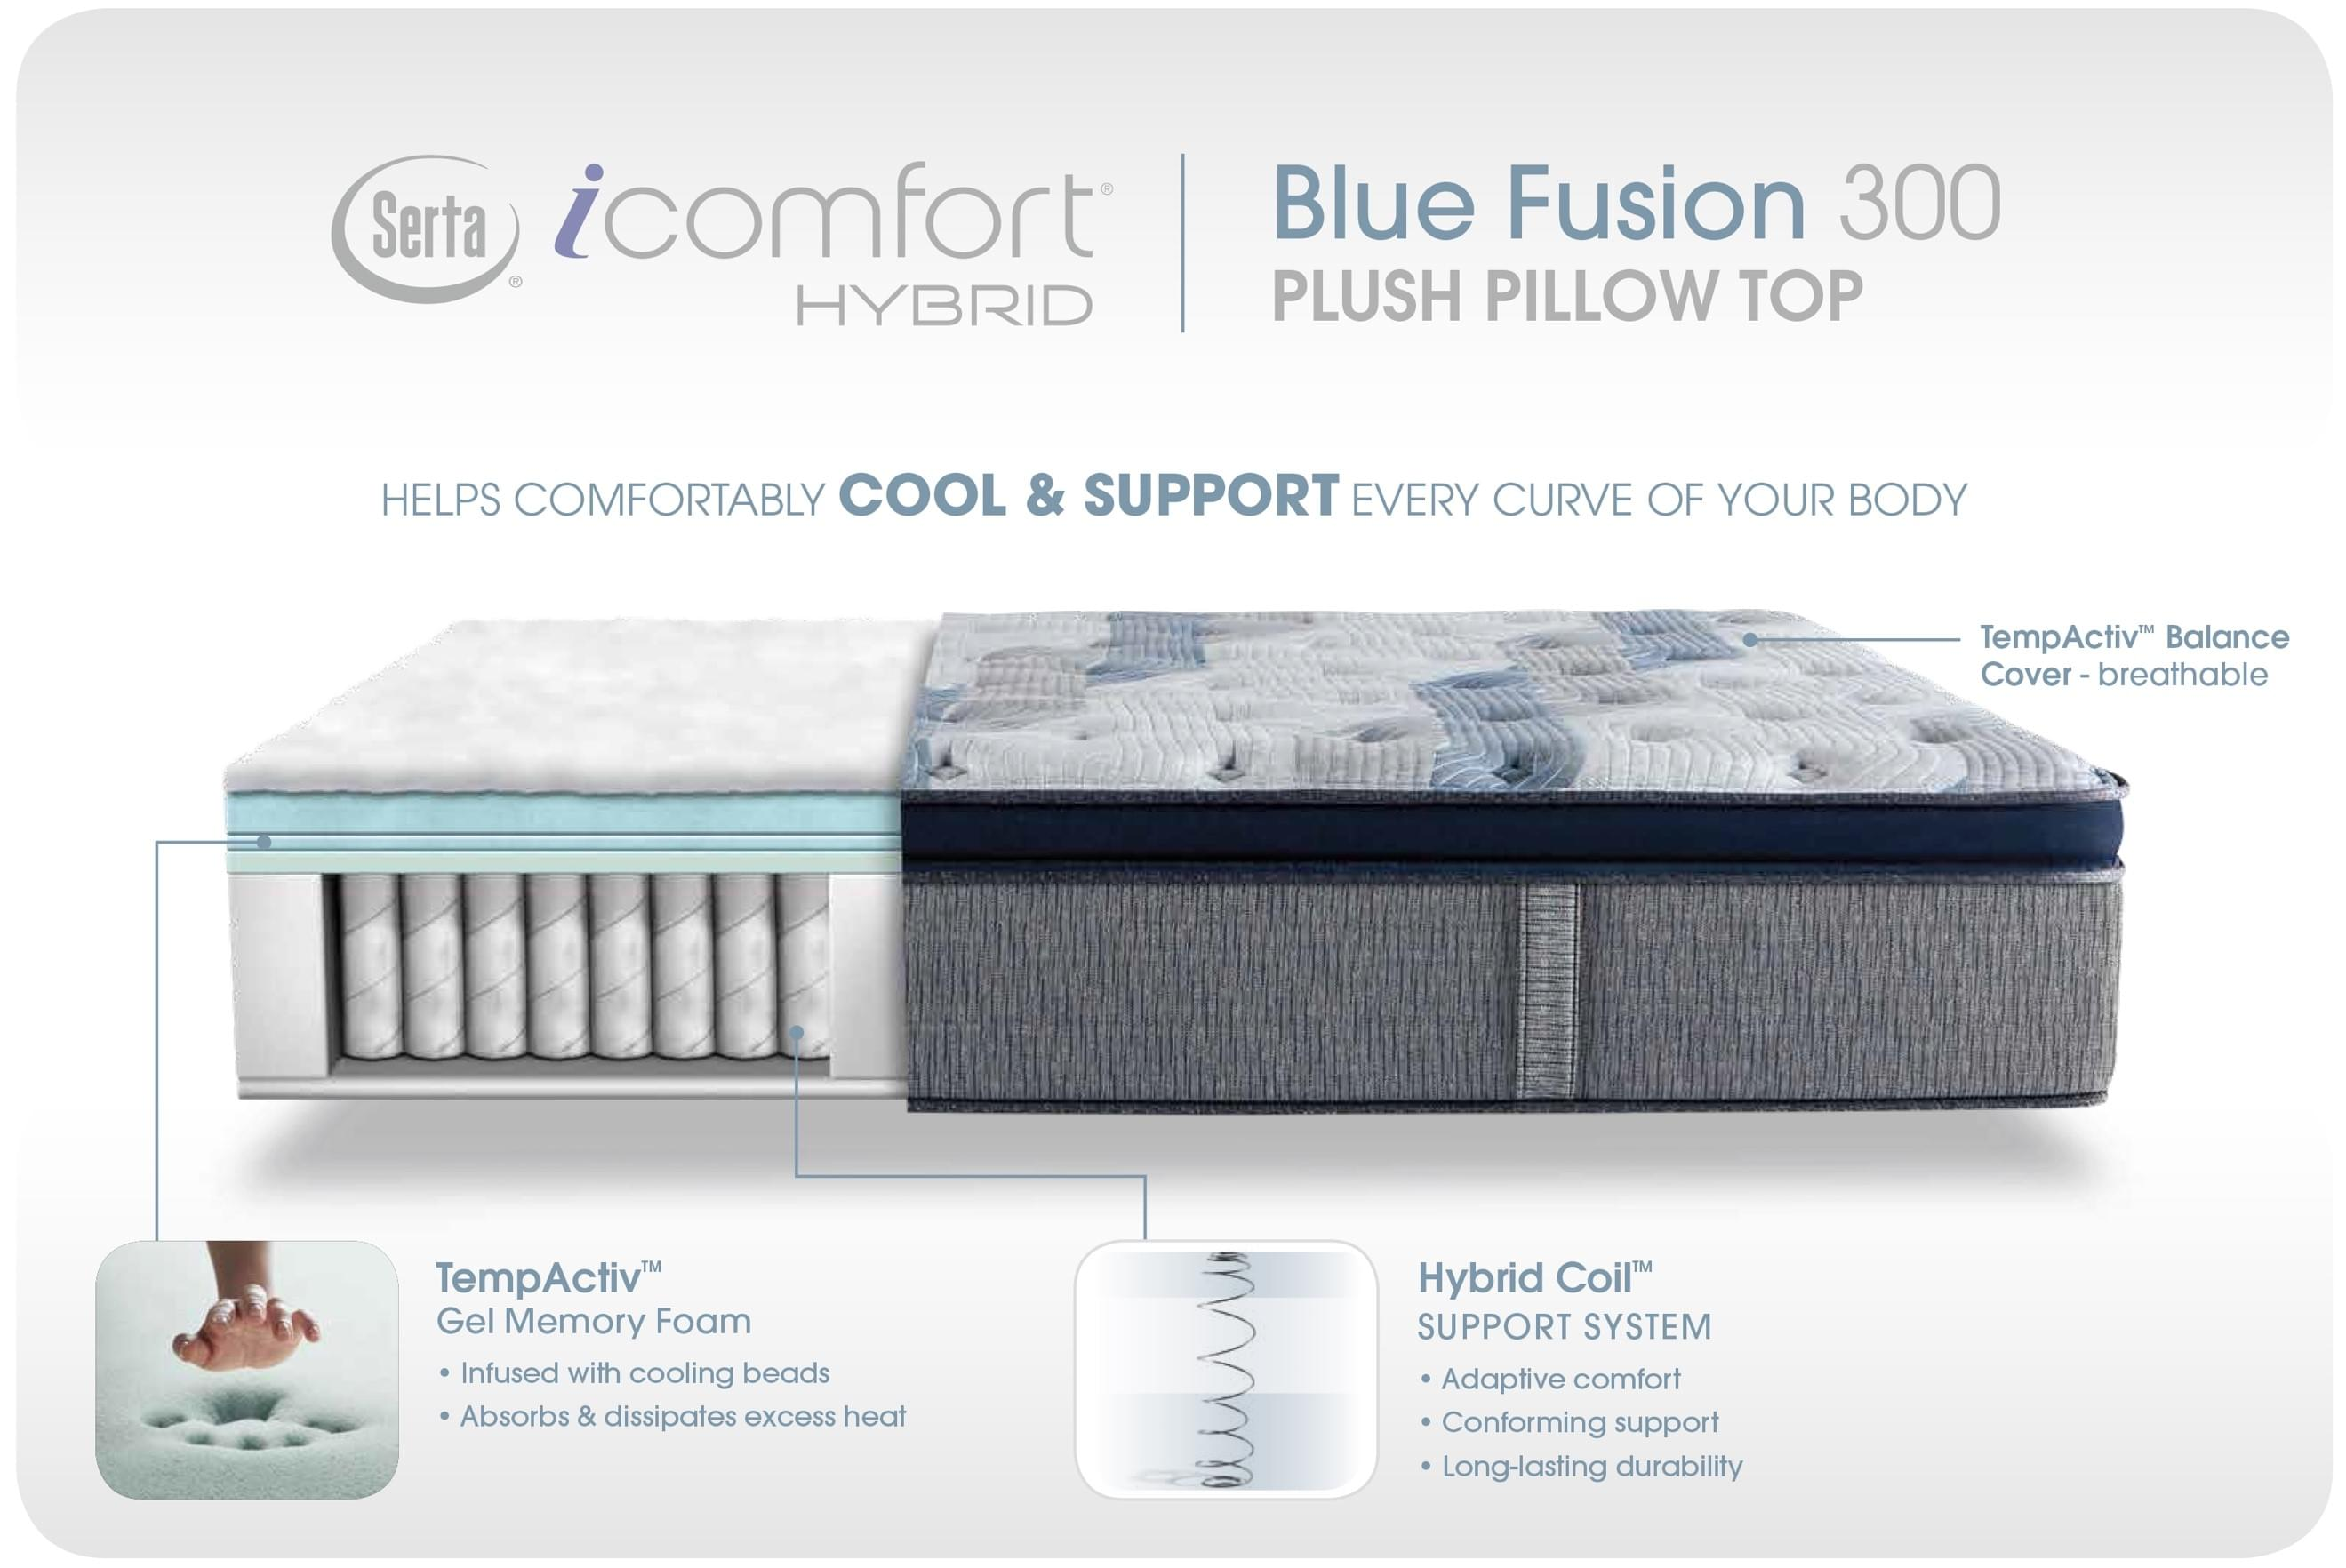 blue fusion 300 pillow top